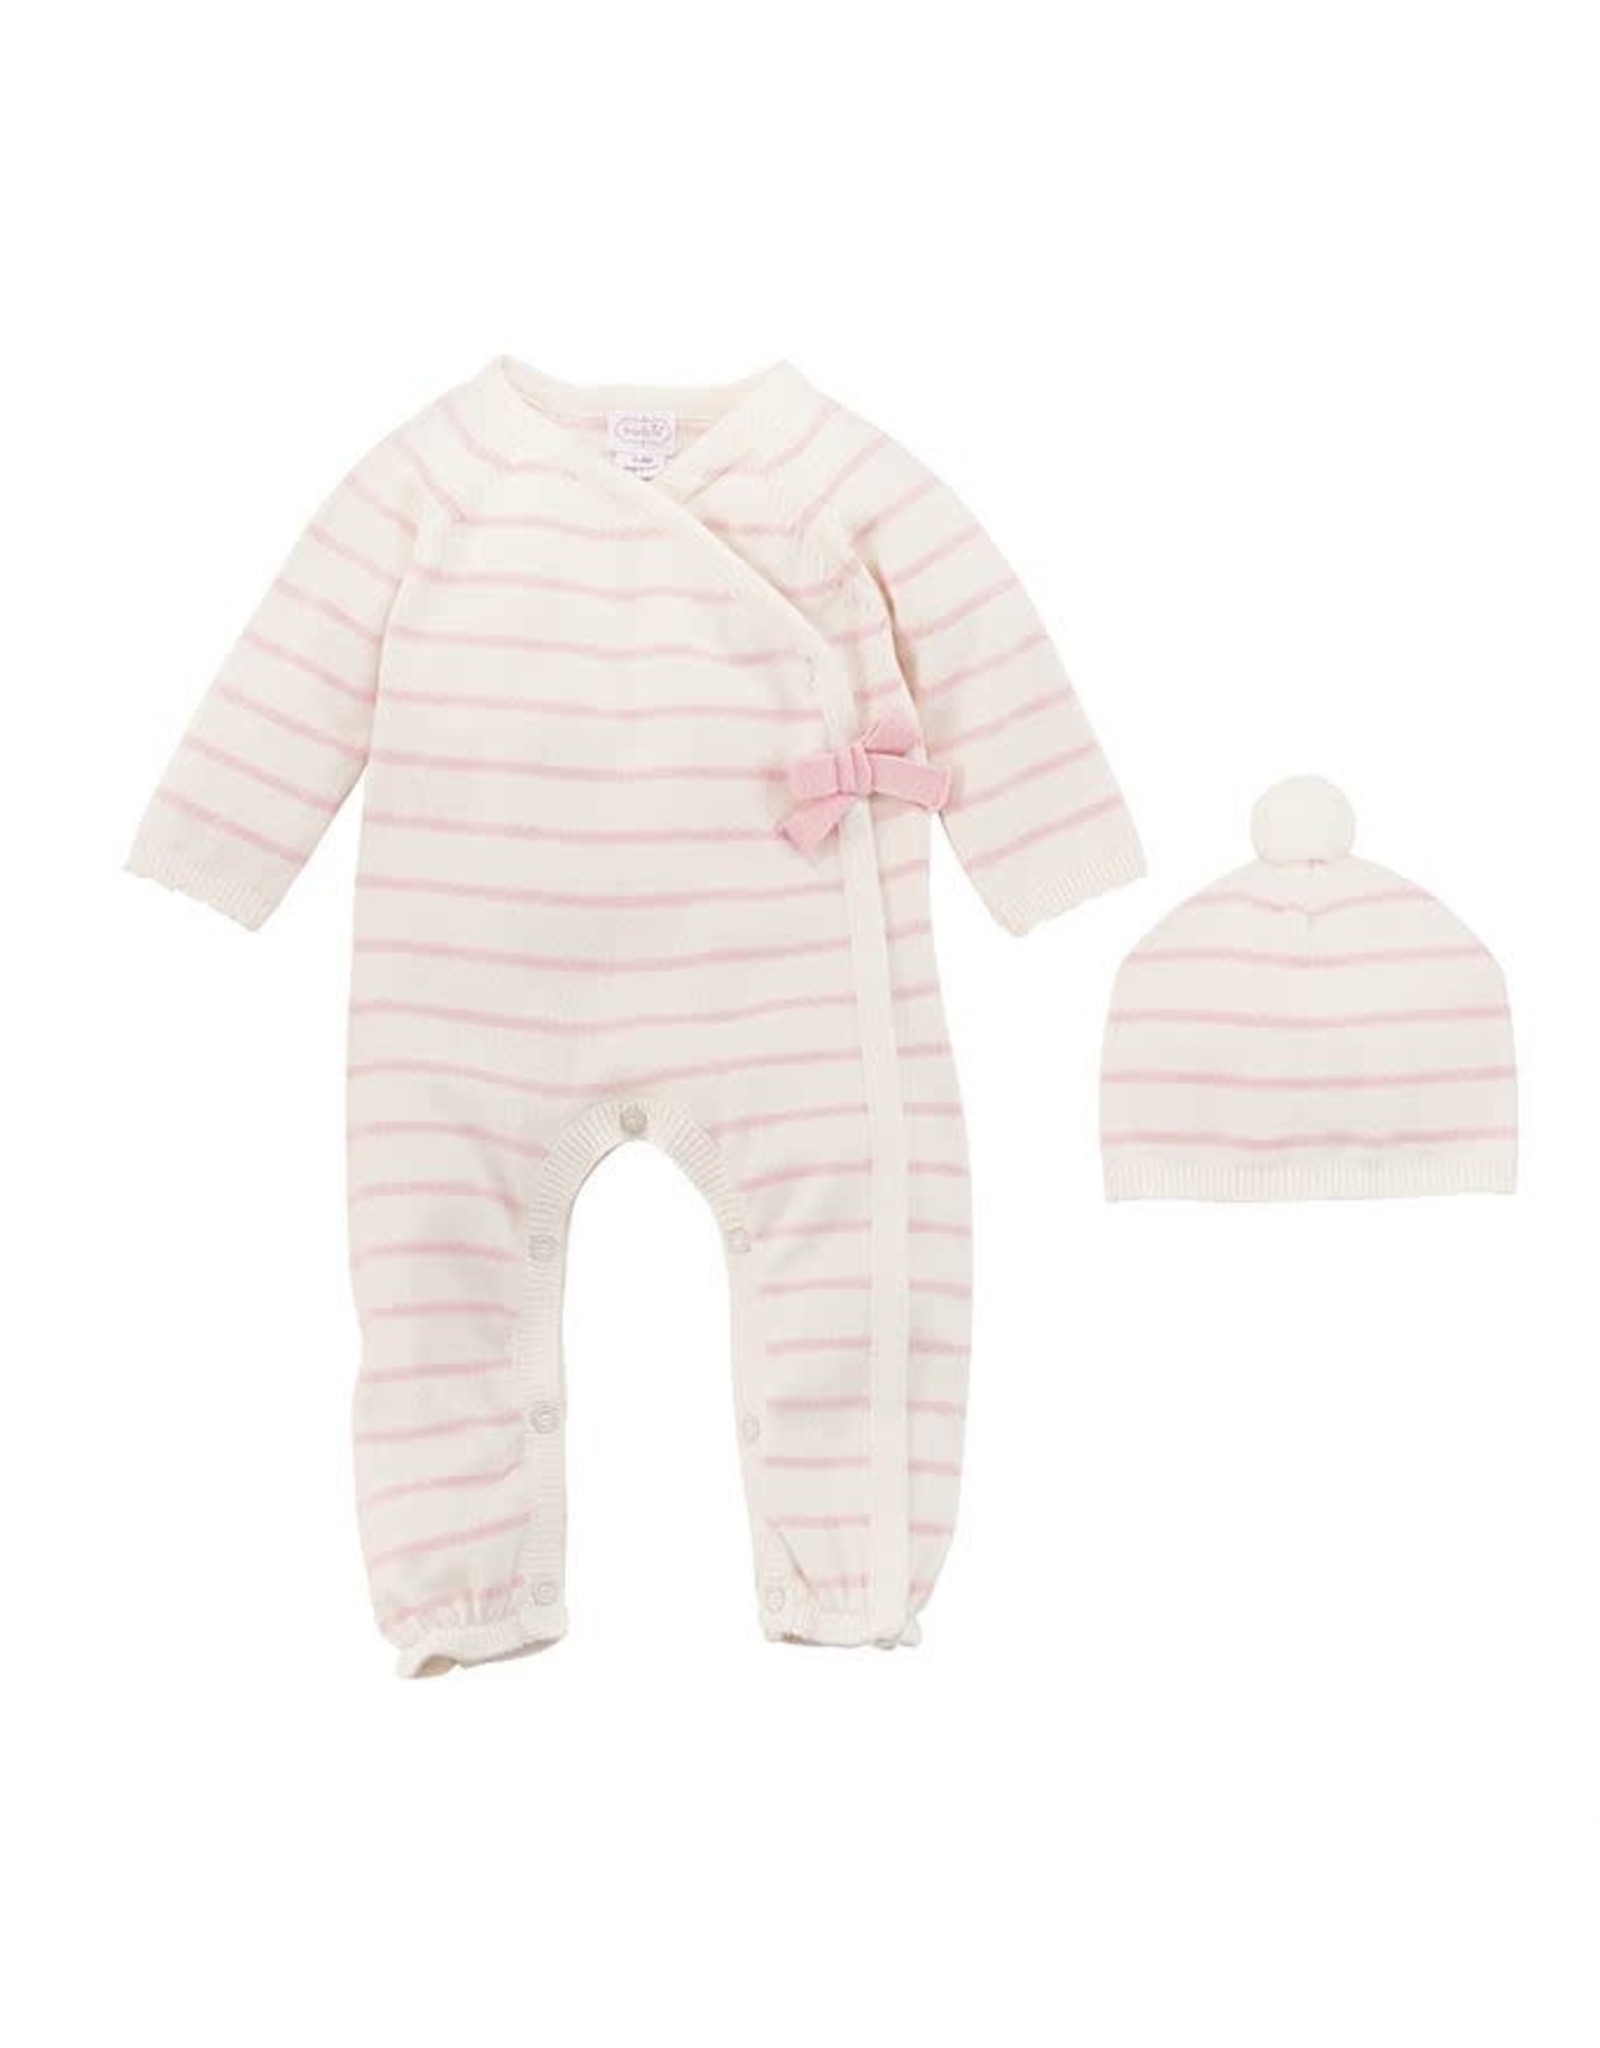 Mudpie Mud Pie - Pink & Ivory Stripe Knitted 0-3m Gift Set